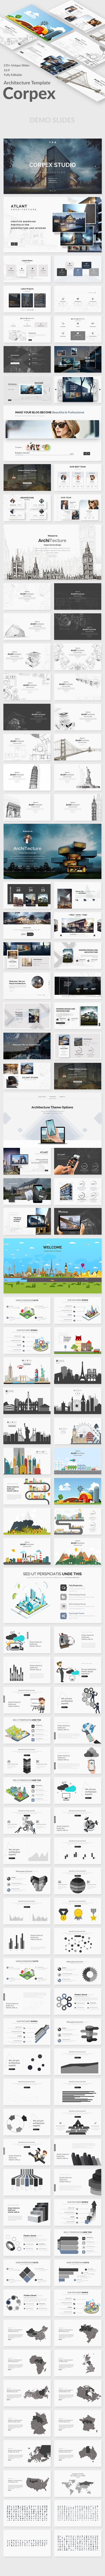 Corpex Architecture and Construction Keynote Template - Creative Keynote Templates